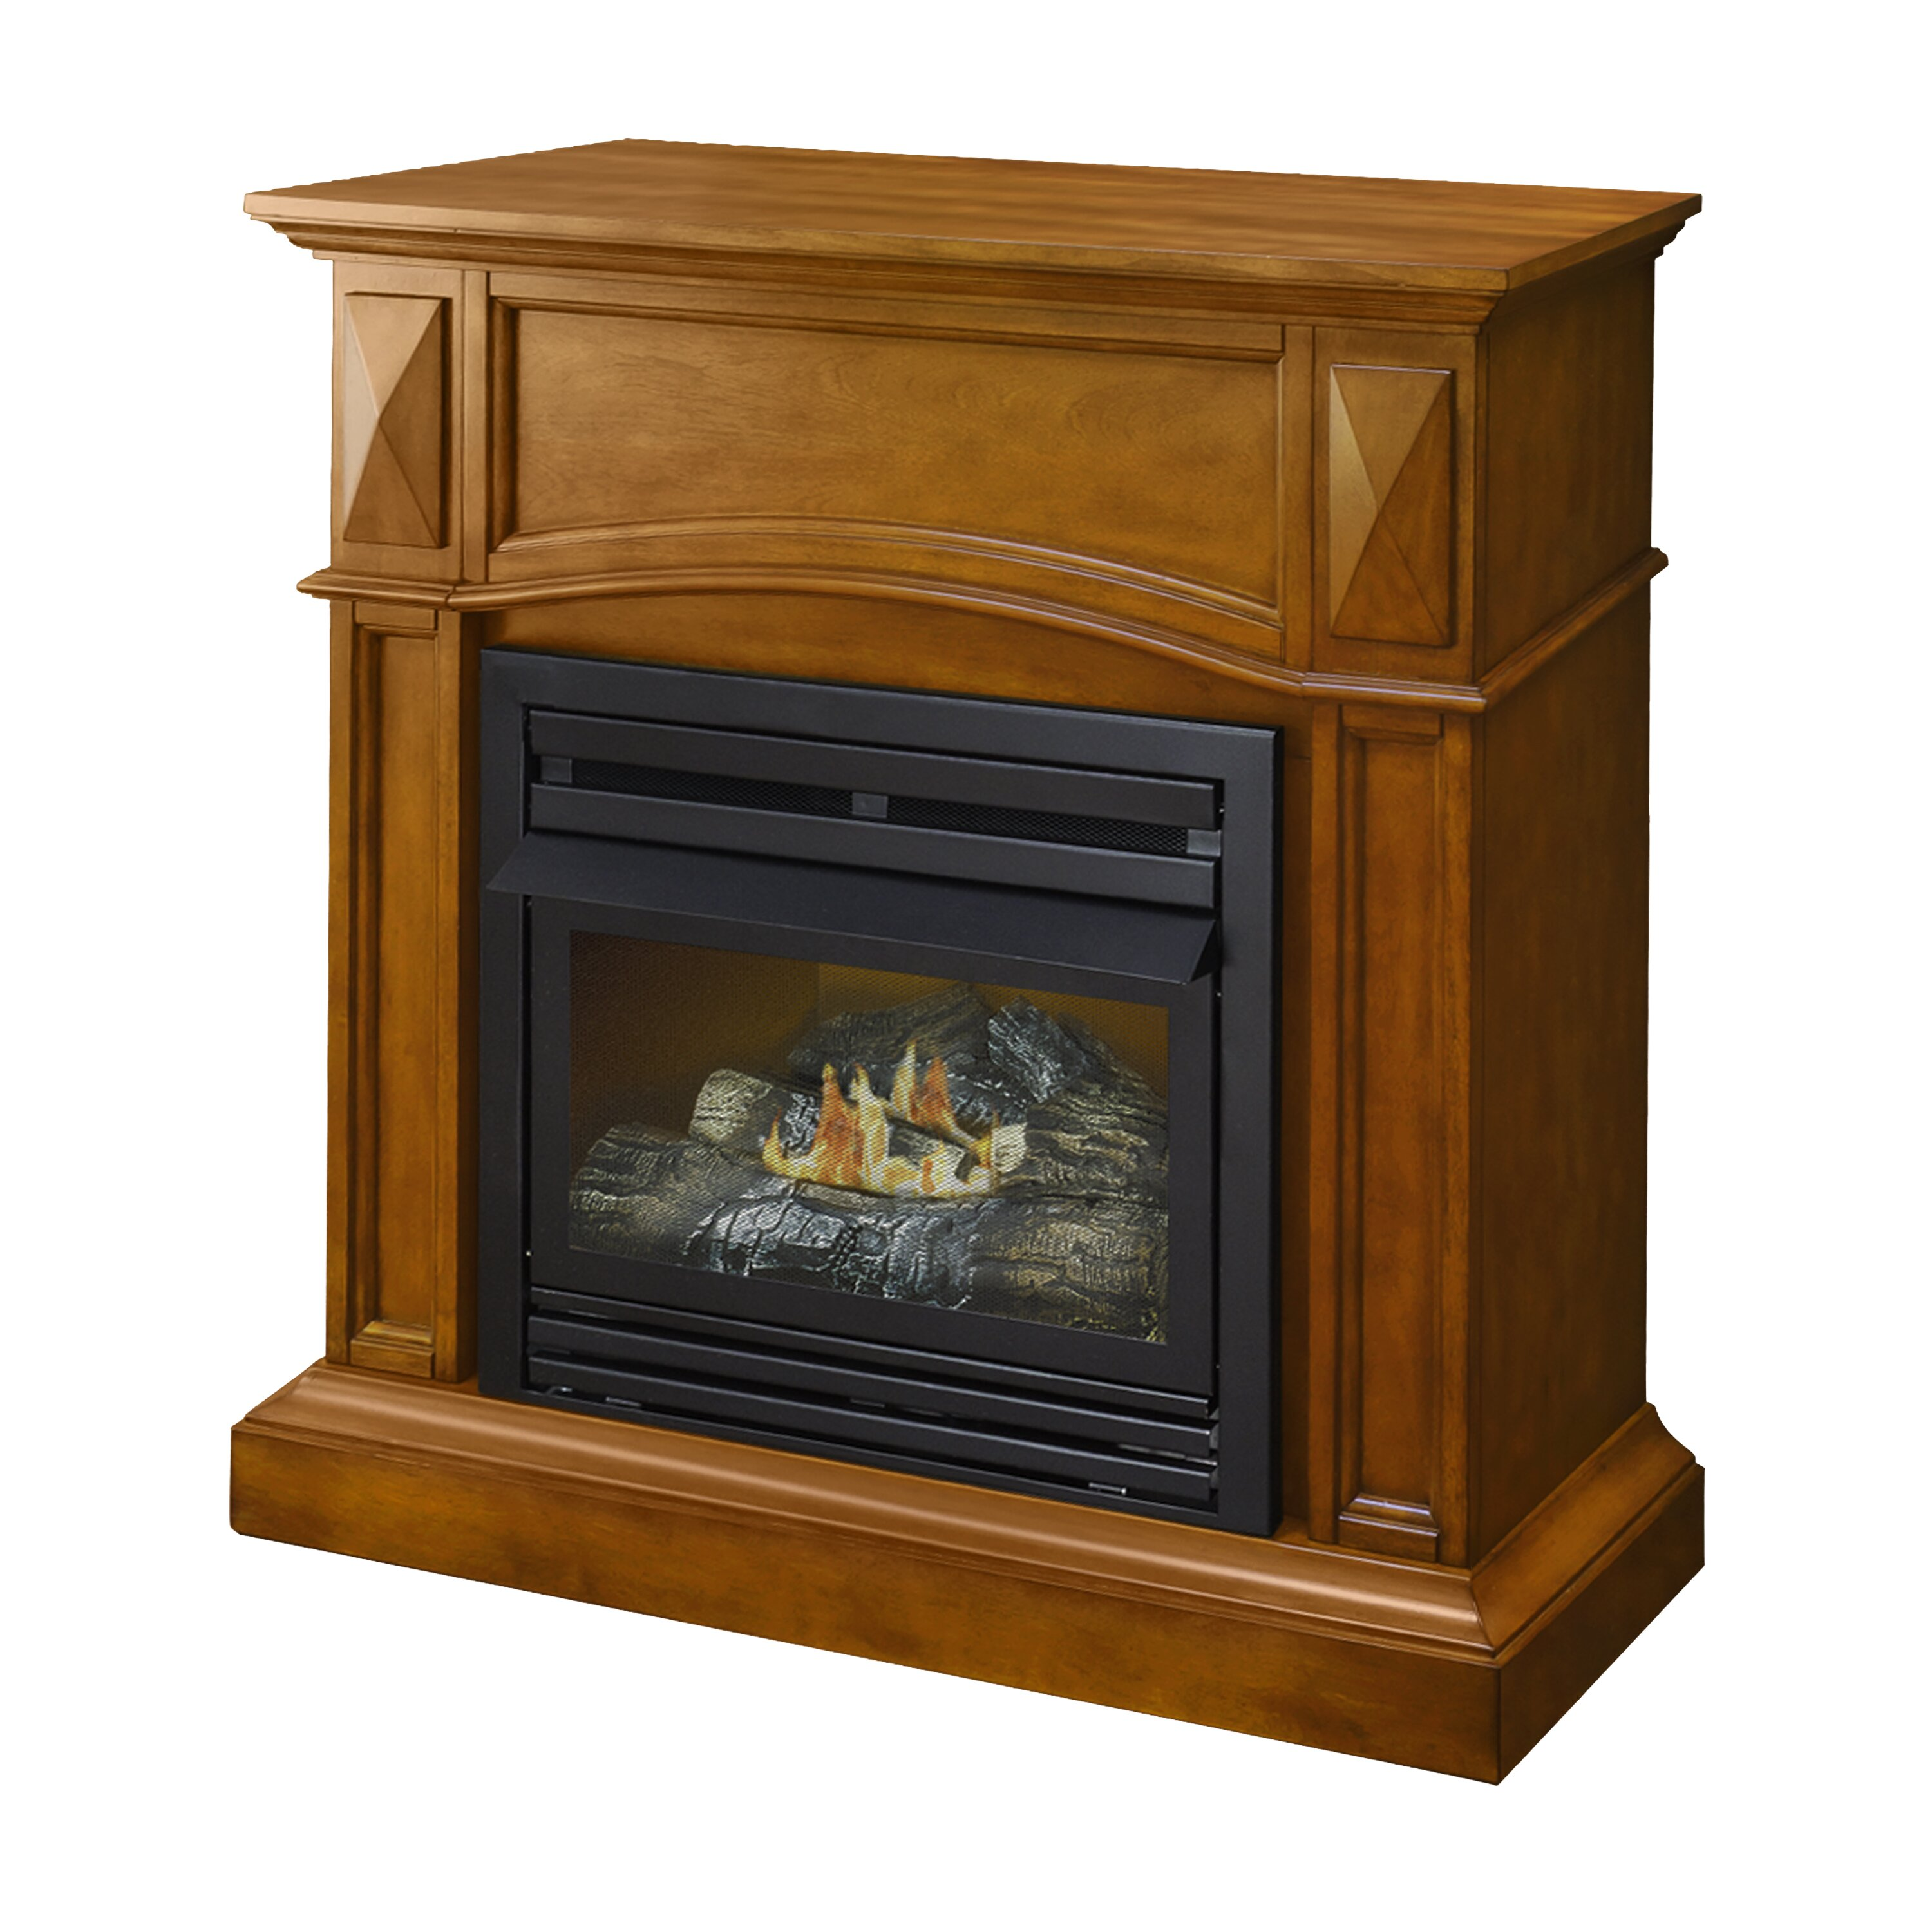 Pleasant Hearth Compact Vent Free Dual Fuel Gas Fireplace Reviews Wayfair